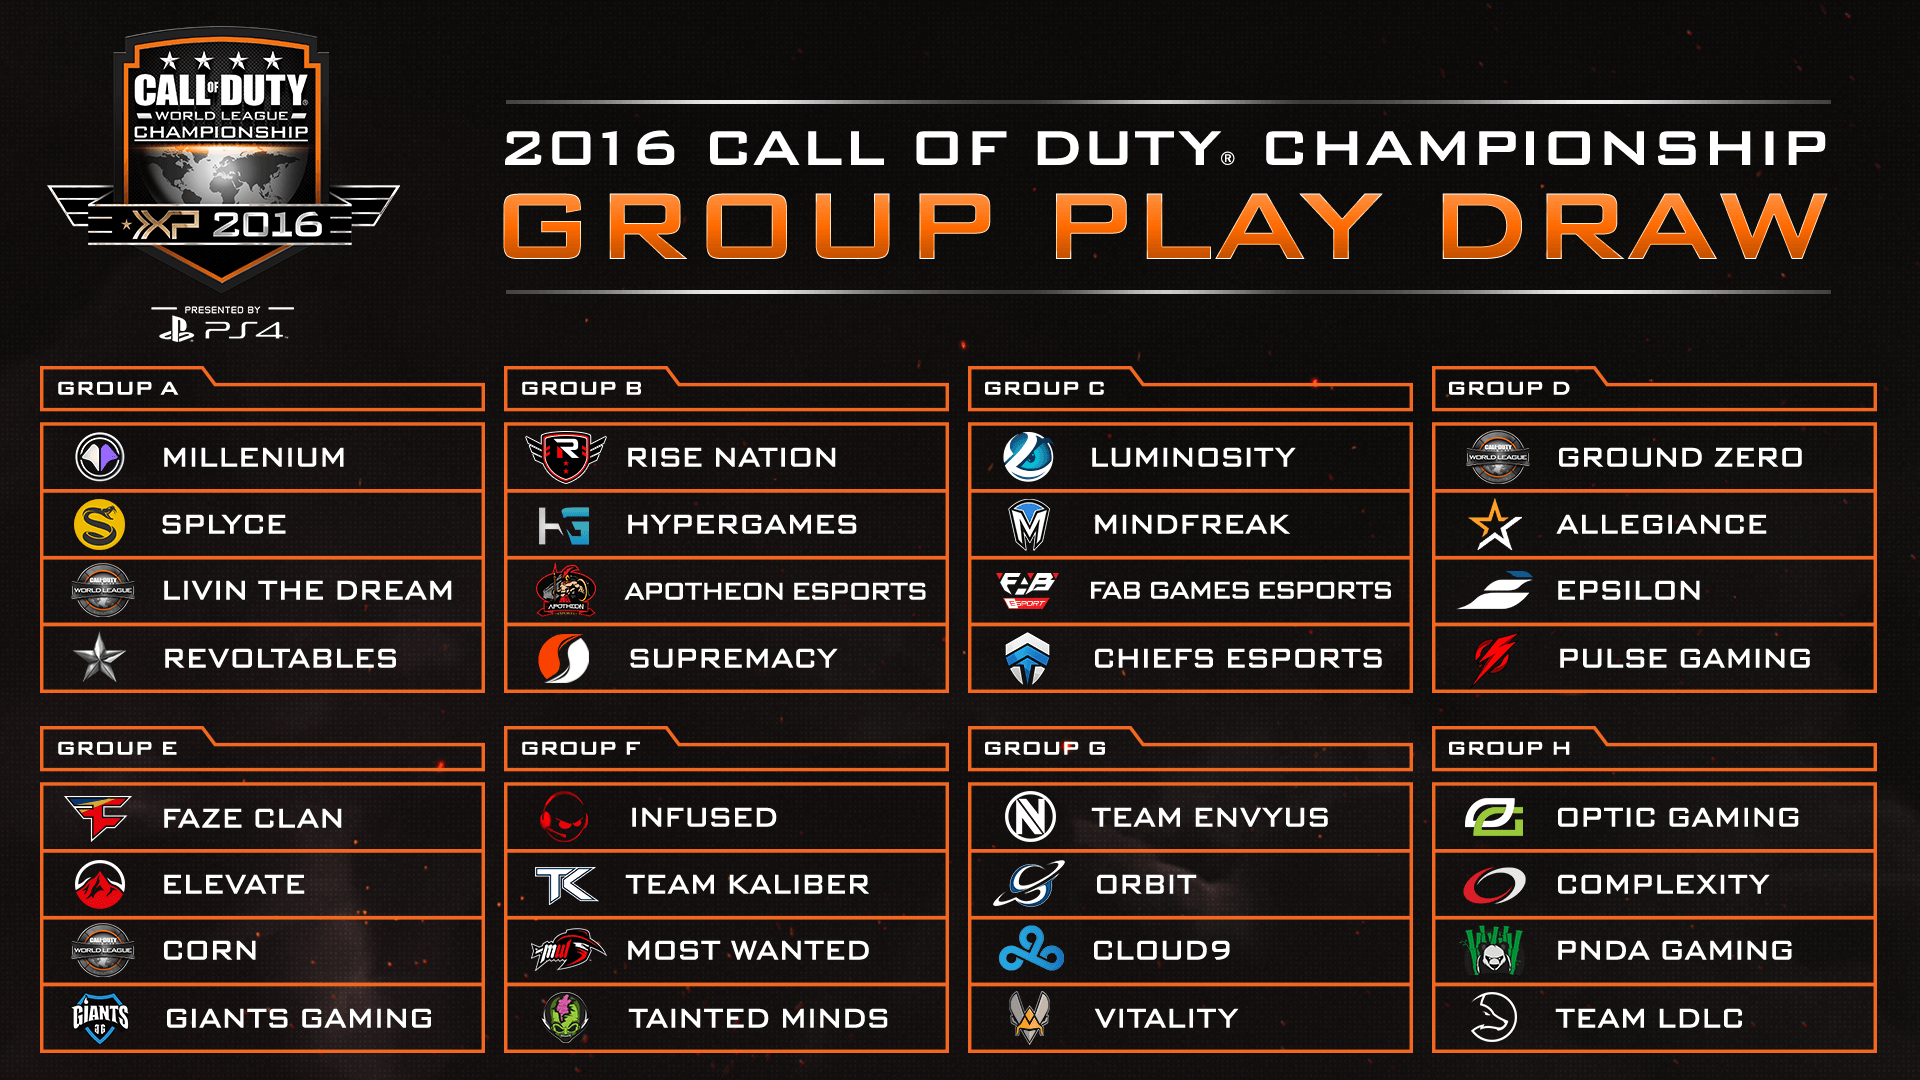 COD Champs 2016 group results